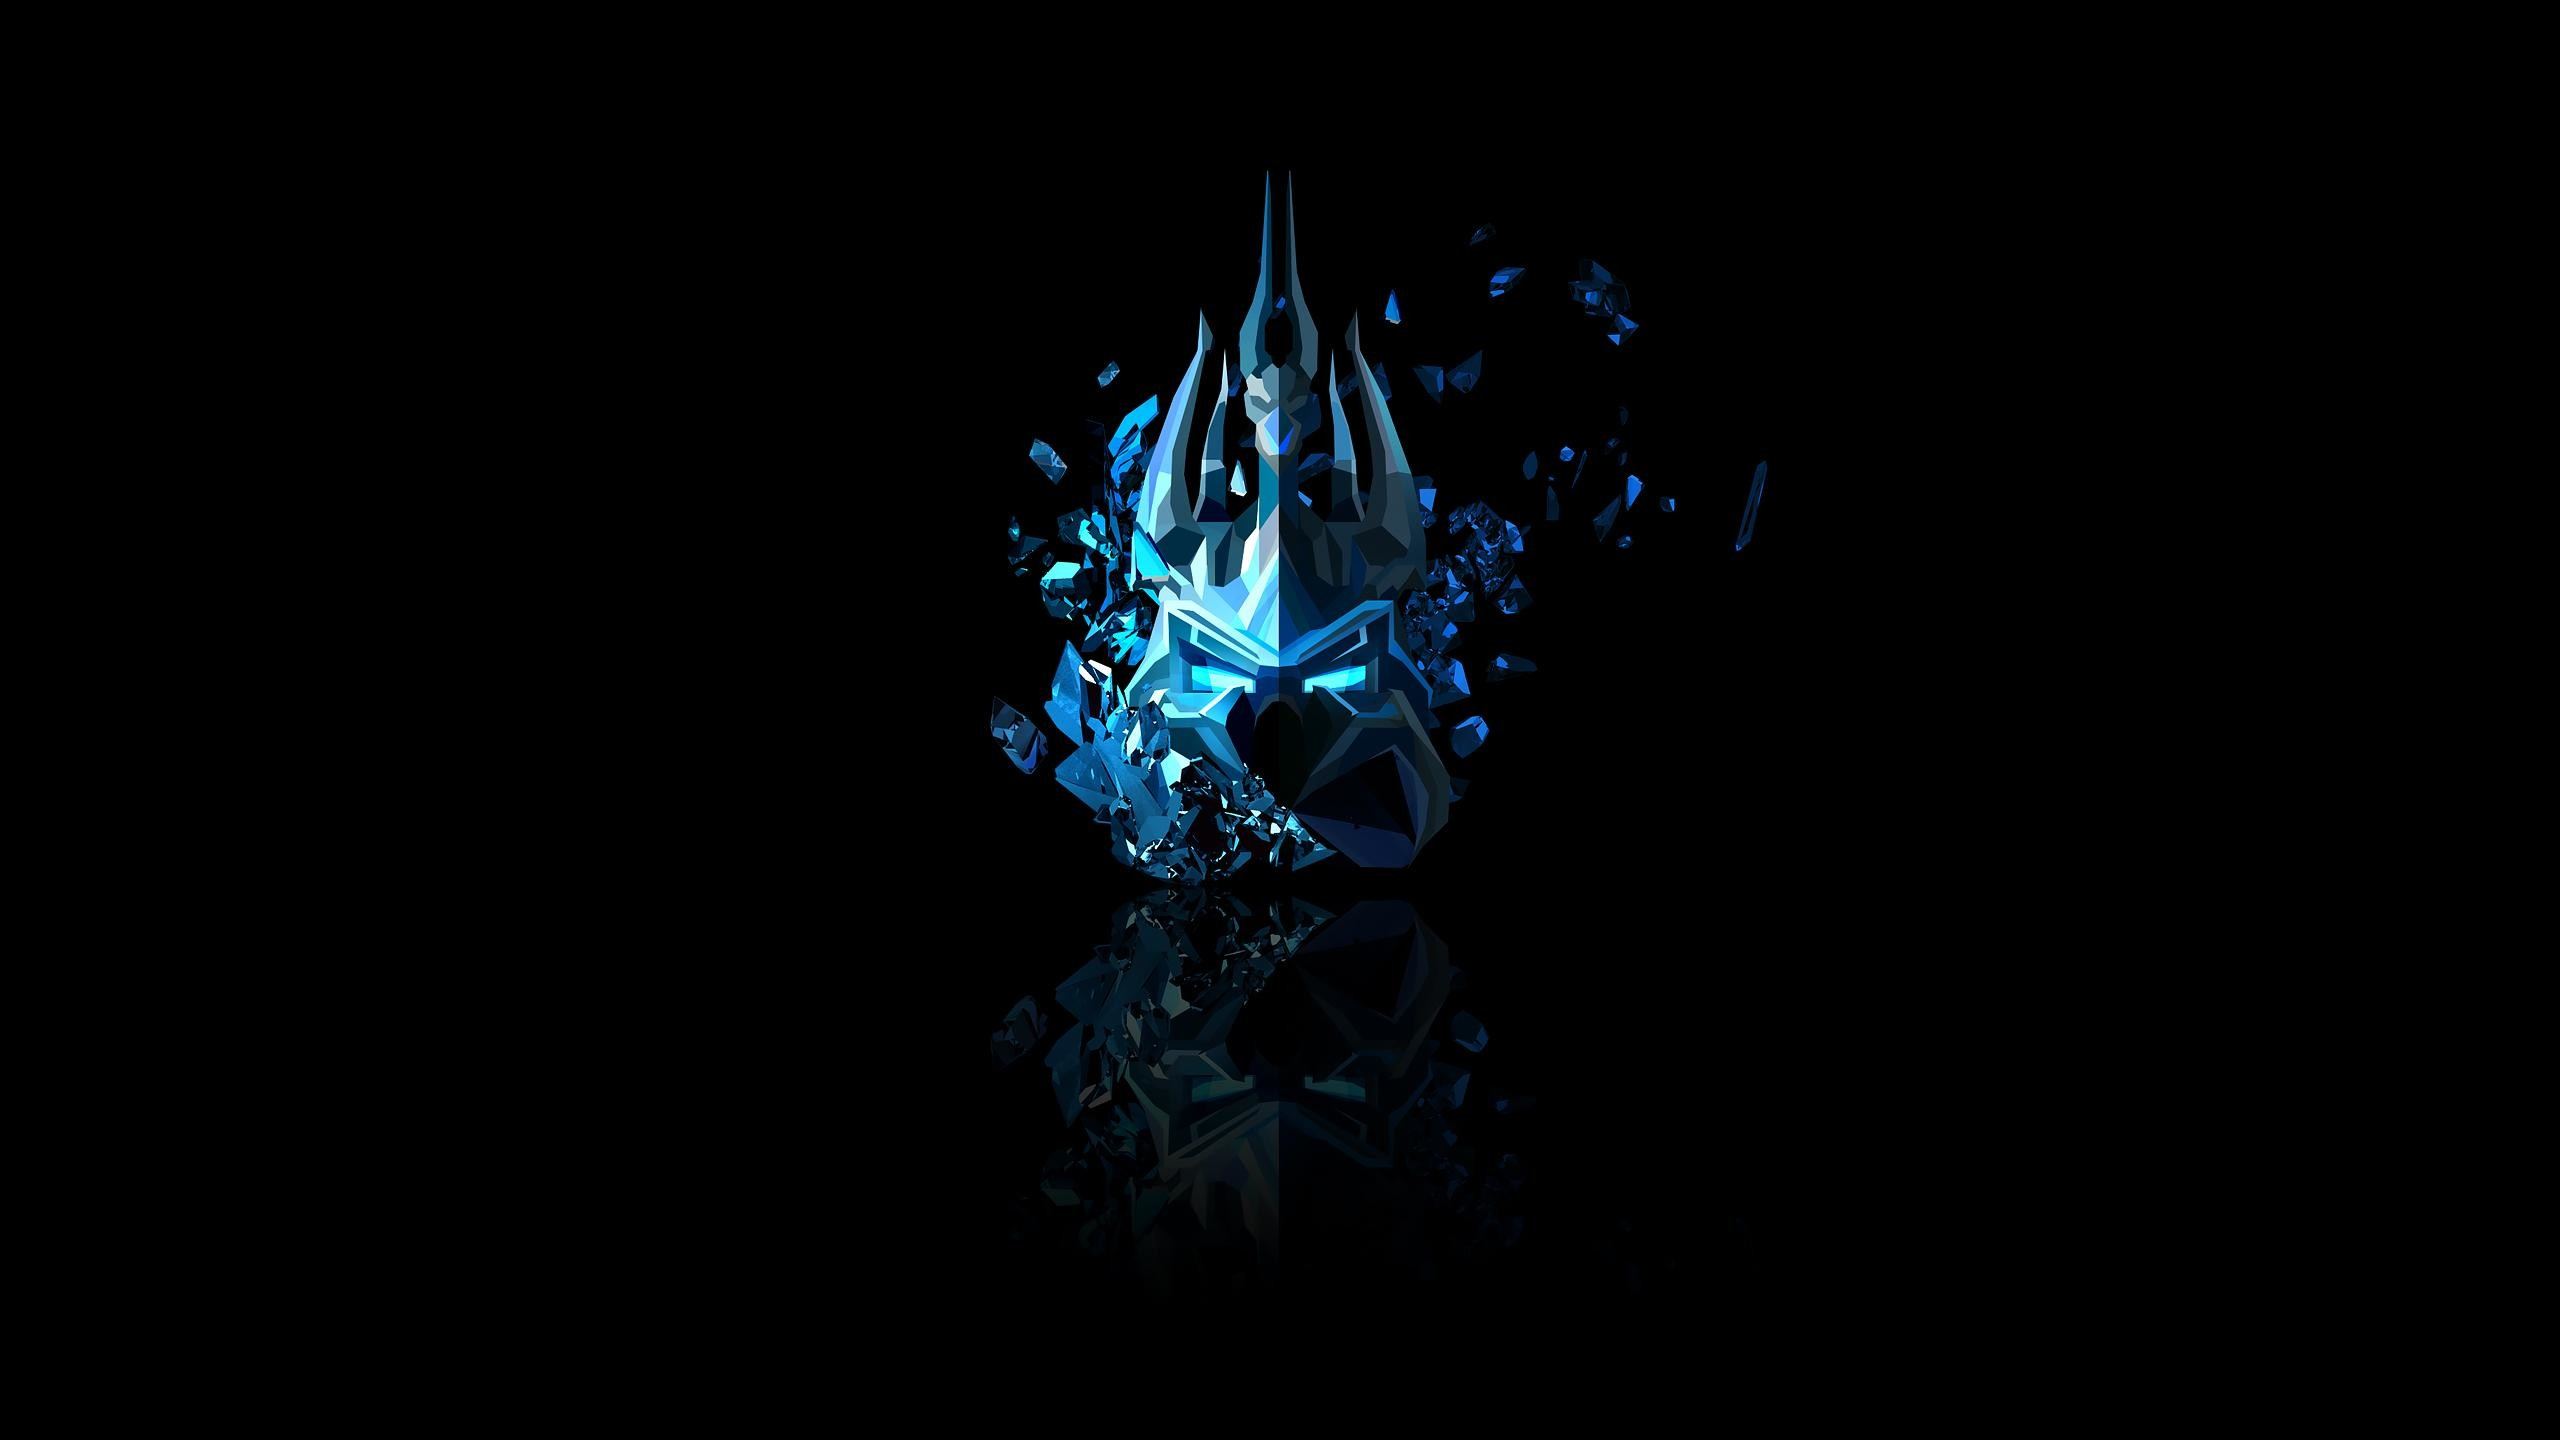 The lich king wallpaper 80 images - King wallpaper ...